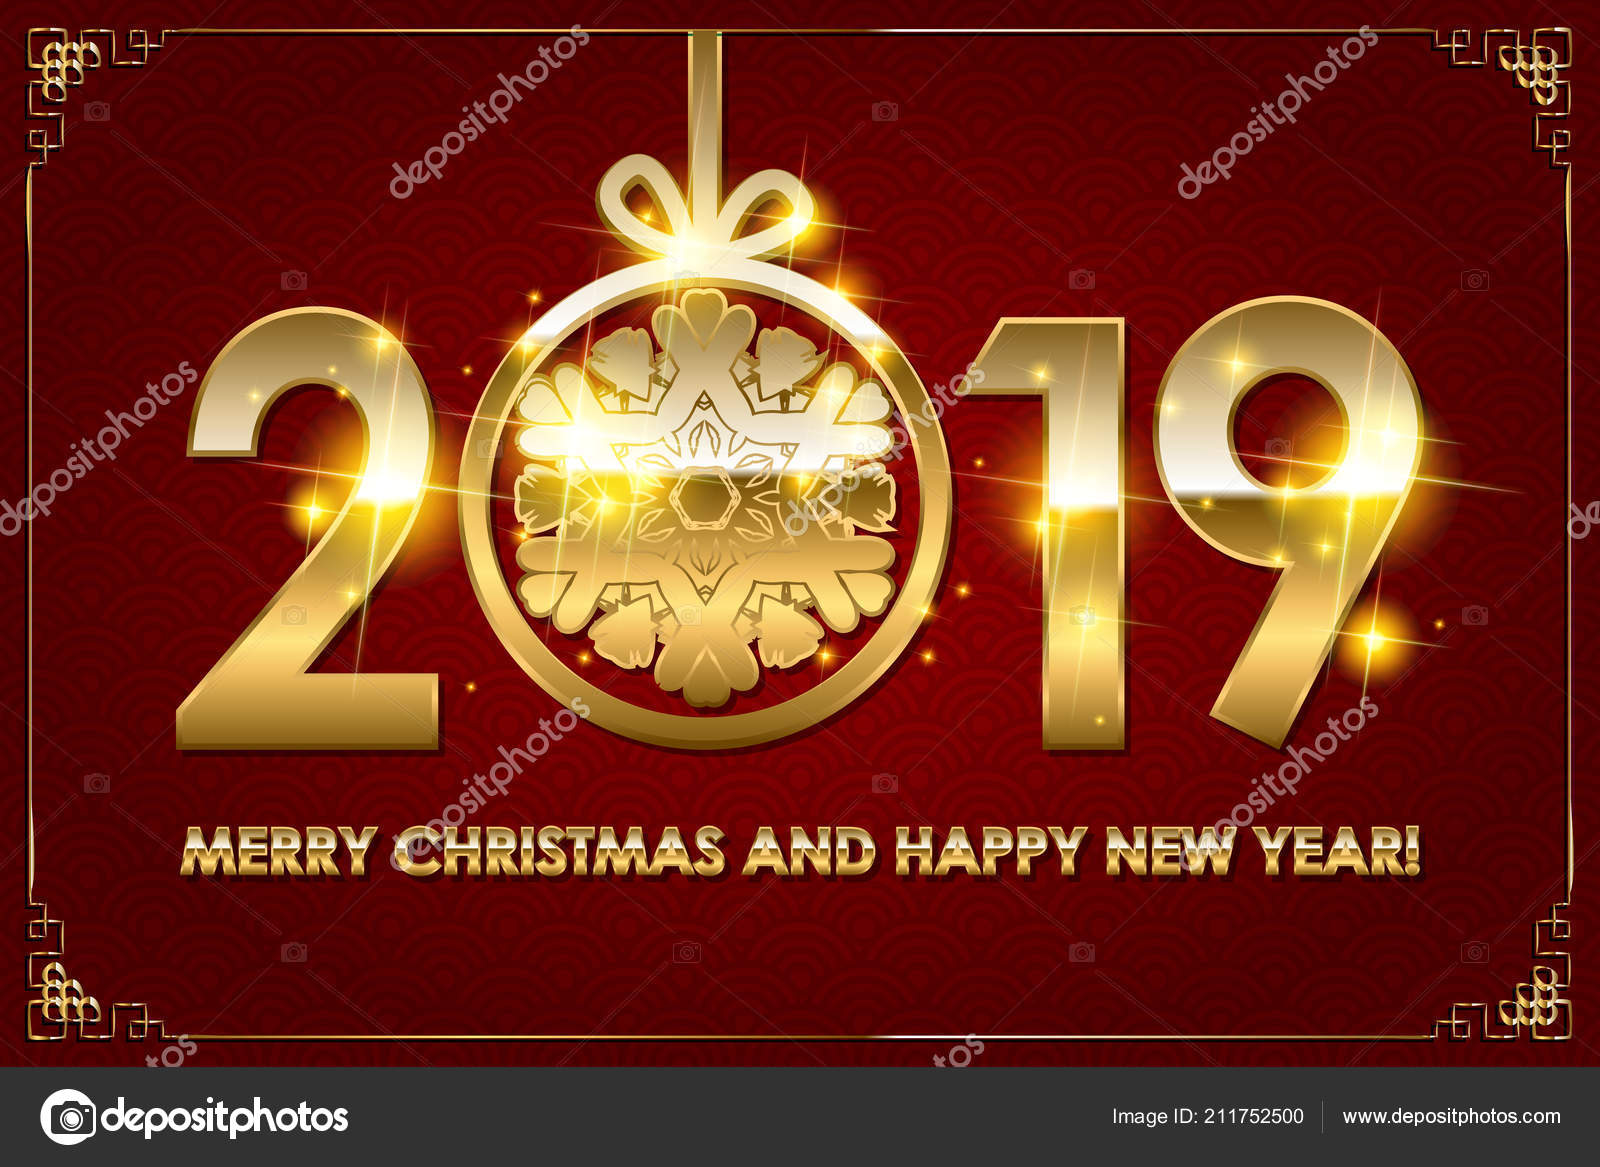 2019 happy new year background for your seasonal flyers and greetings card or christmas themed invitations vector by nastyaaroma2011